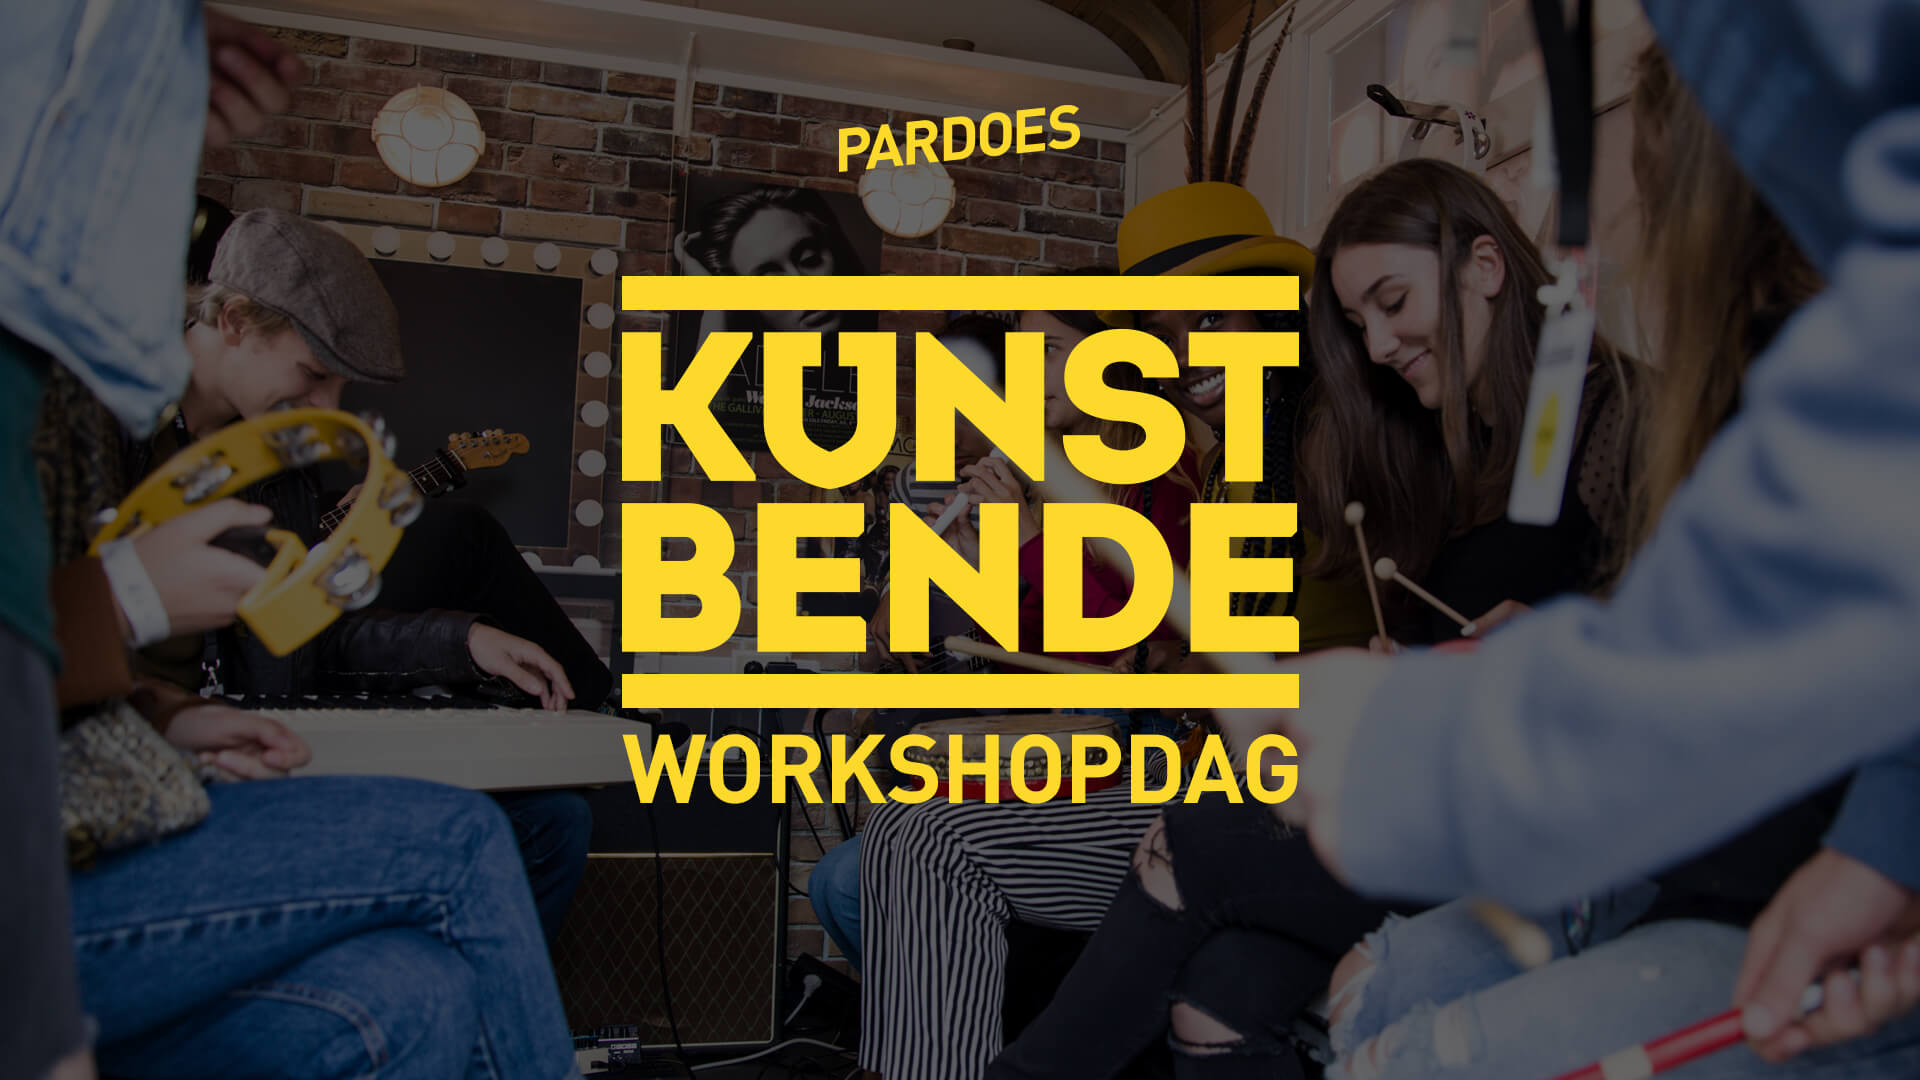 Kunstbende Noord Holland Workshopdag Pardoes Hoogwoud